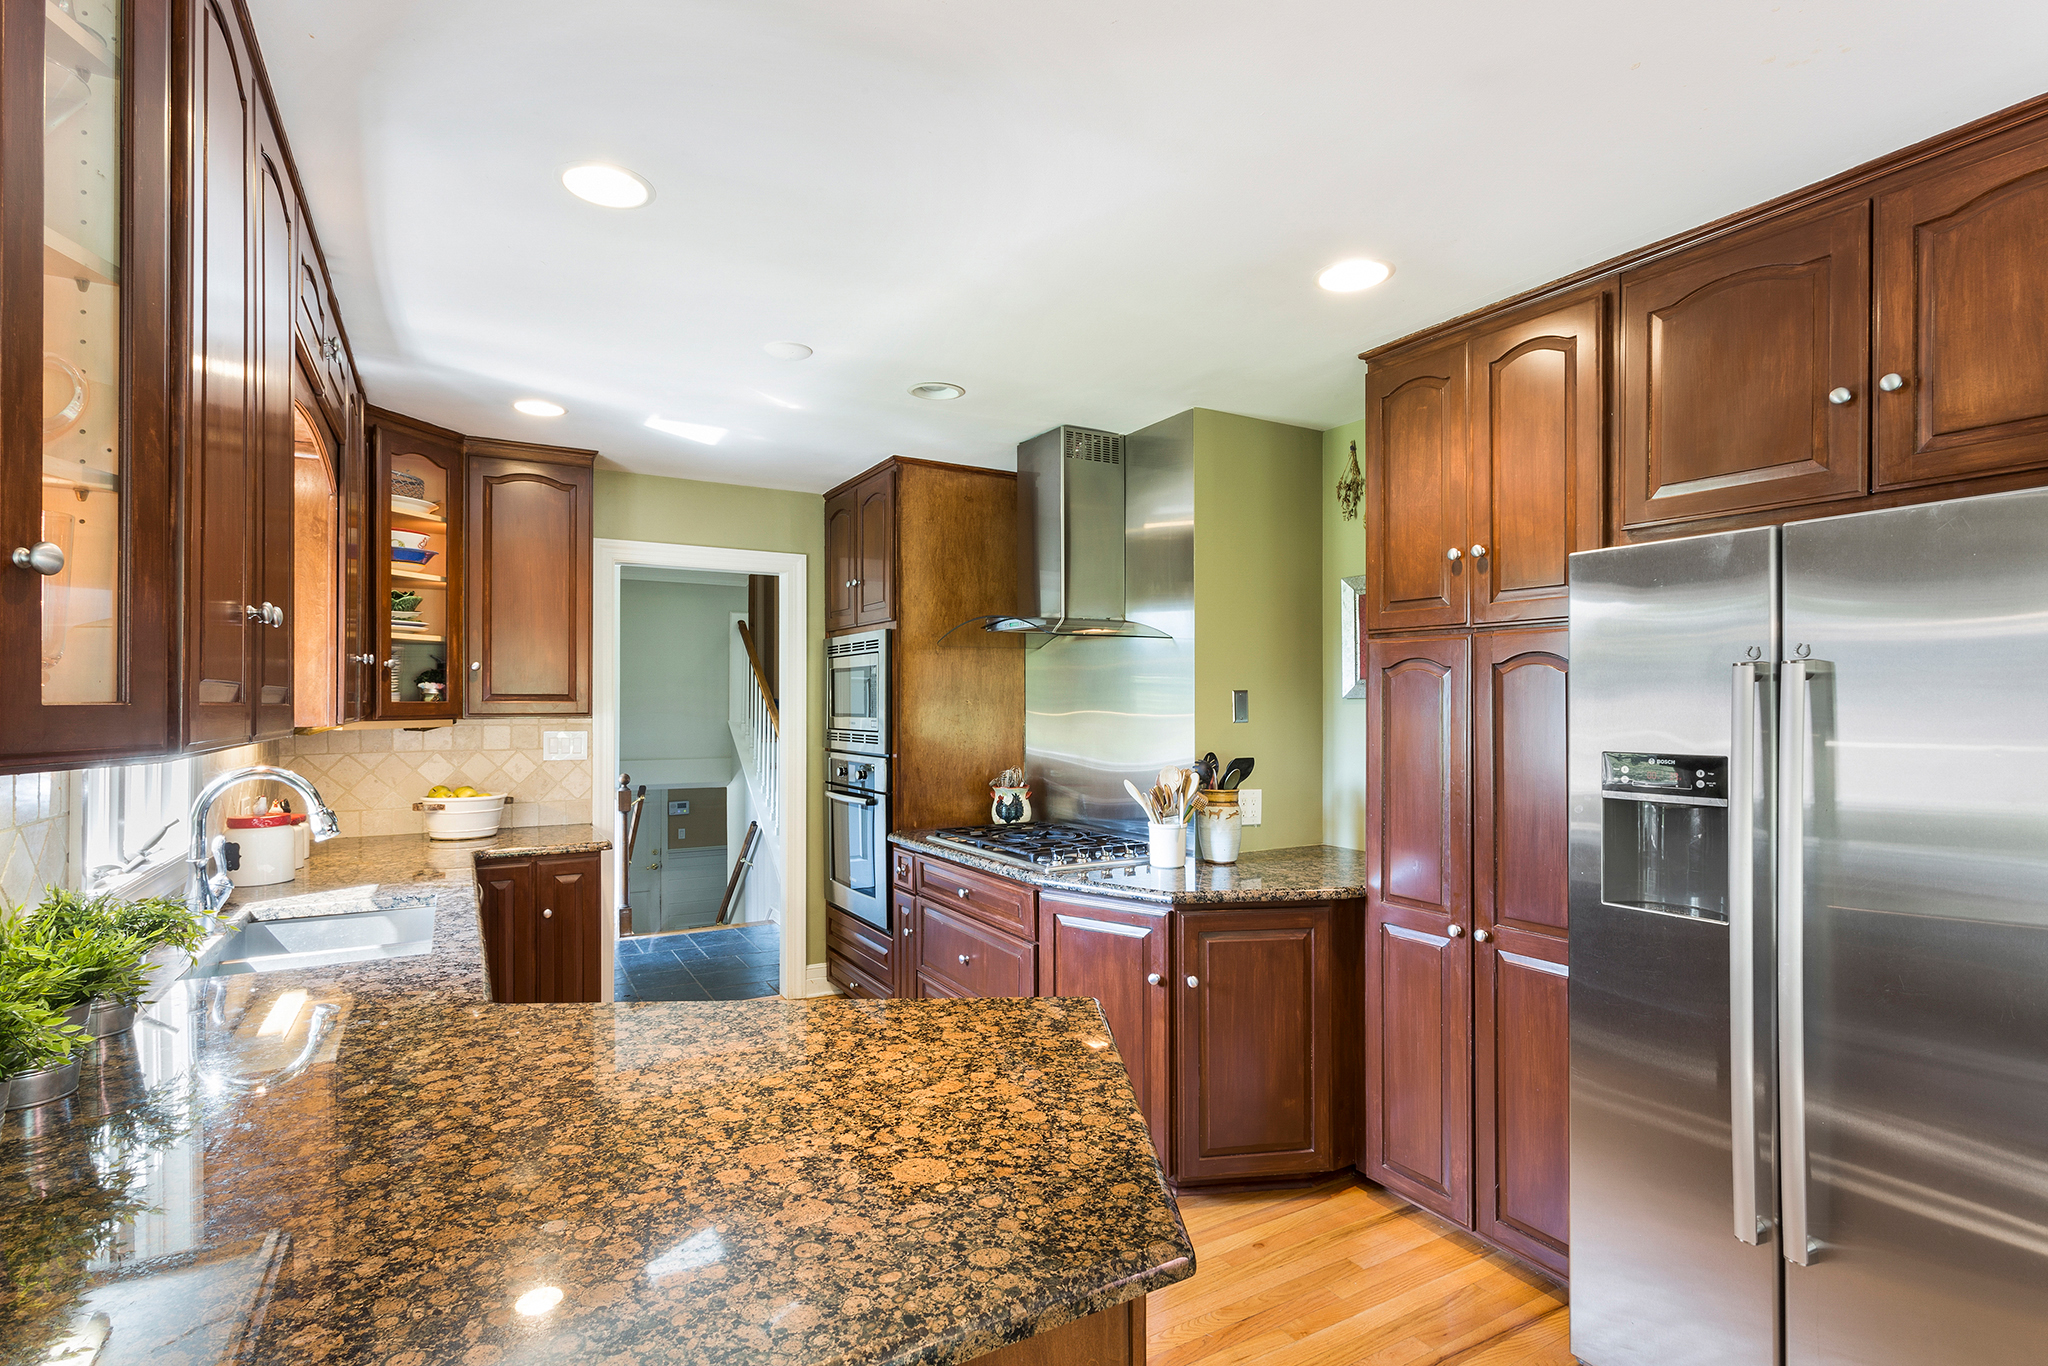 04 7 Scarlet Oak Road Tewksury Township — Kitchen 2